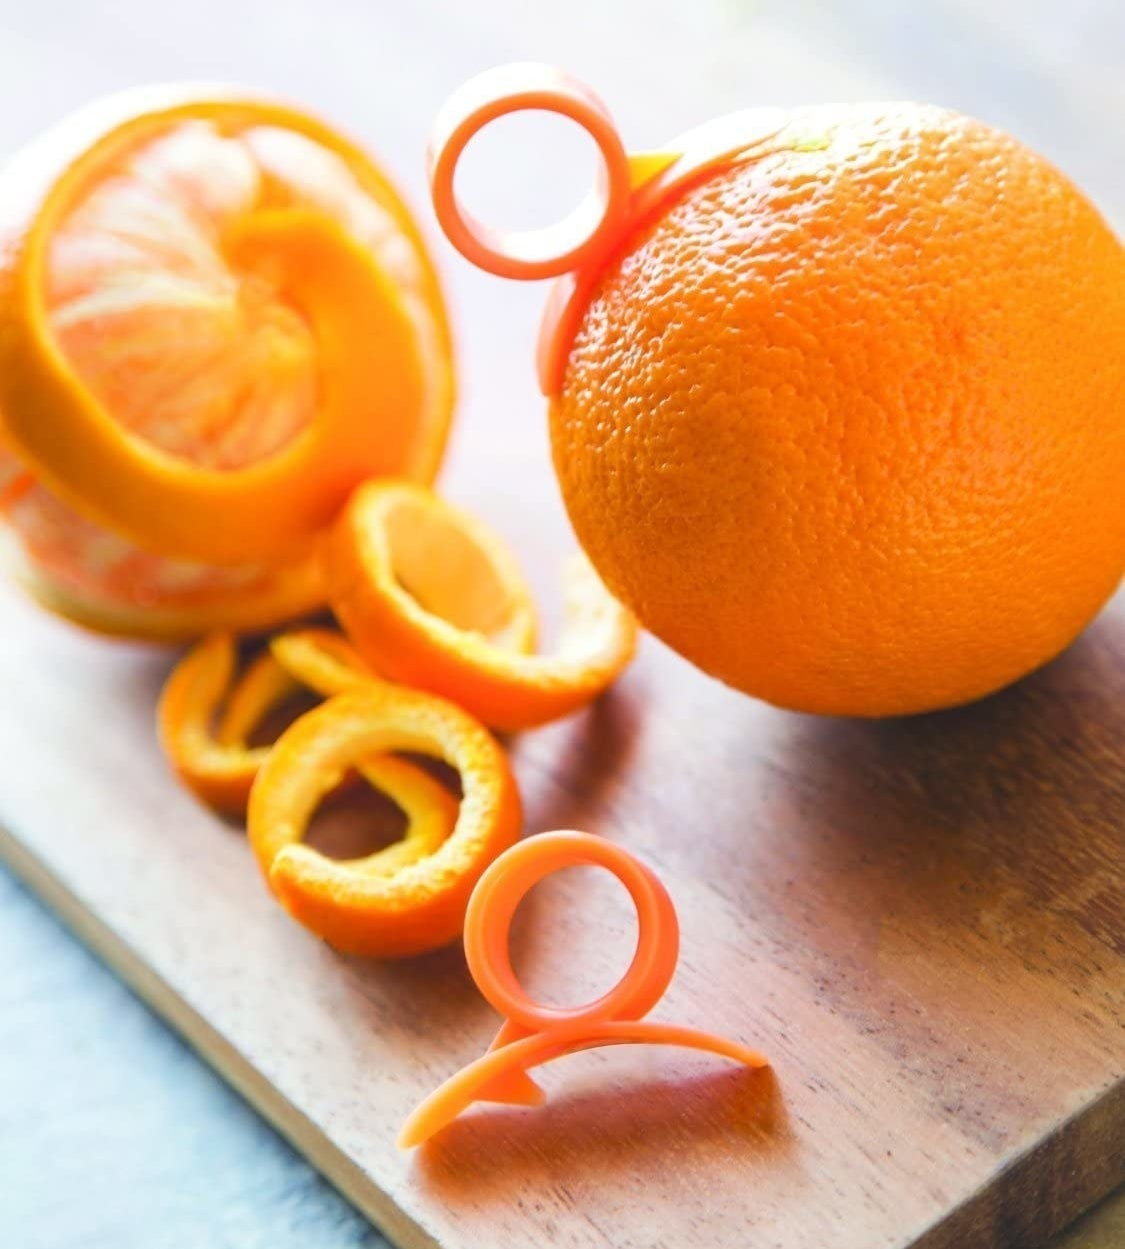 A peeled orange and an orange wit the peeler dug into it on a cutting board